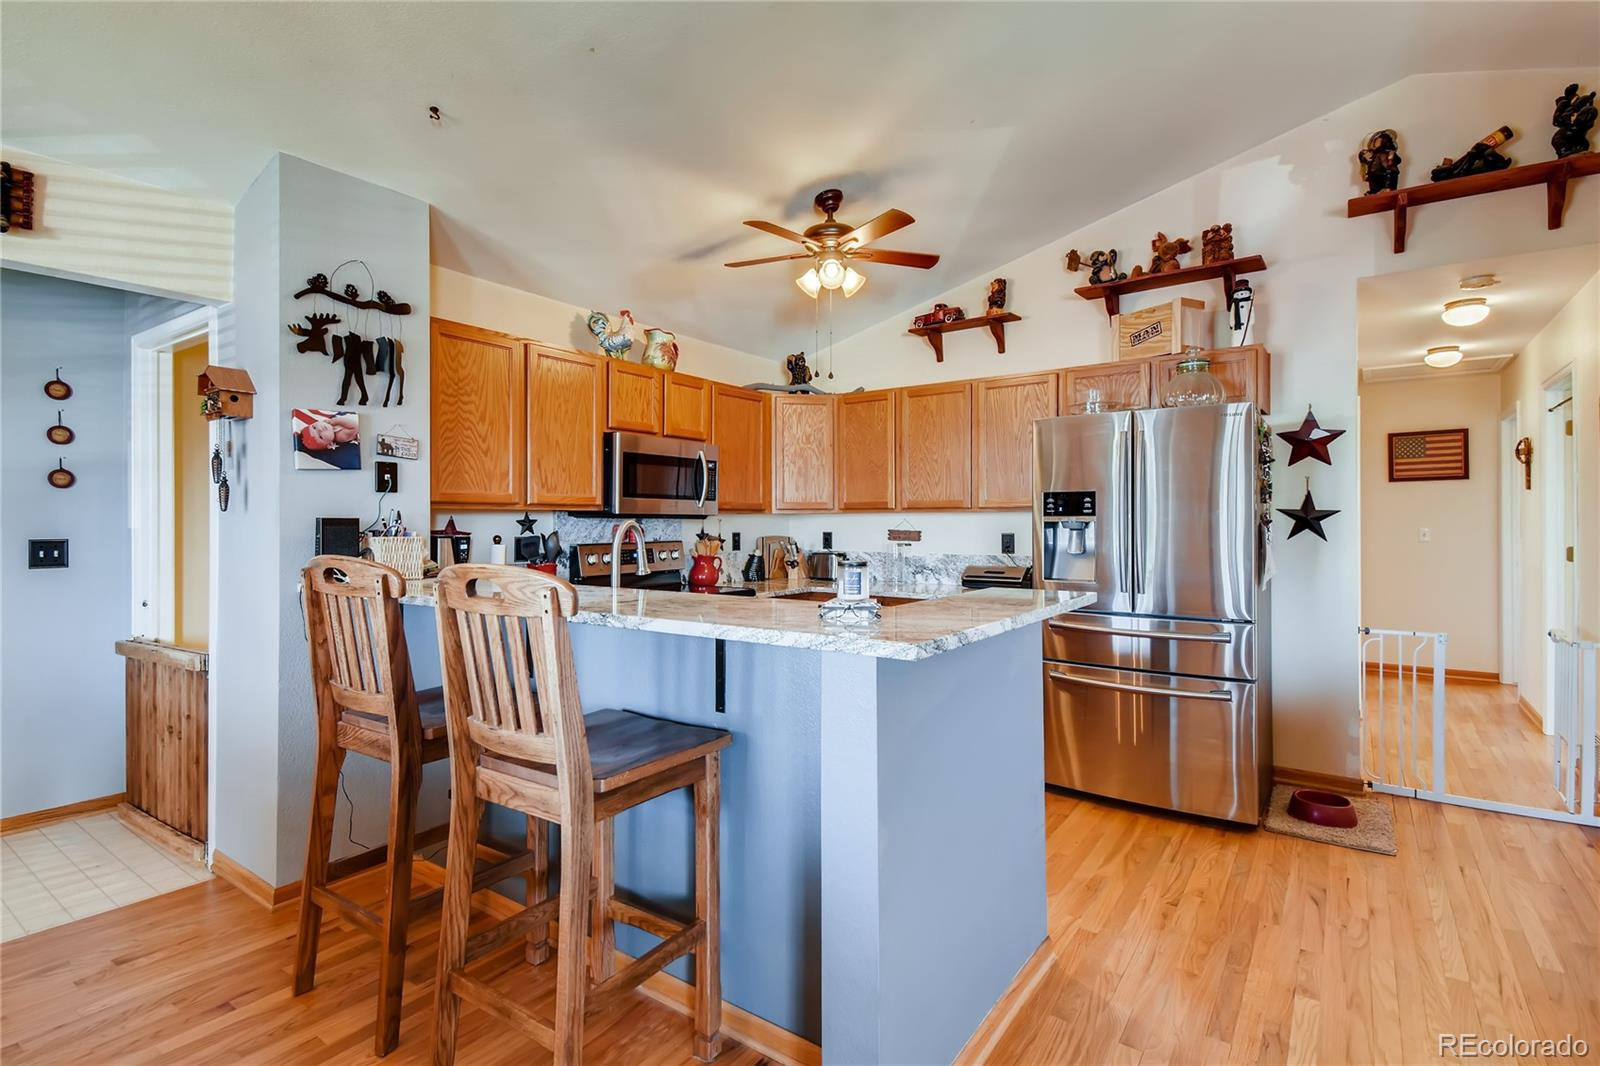 MLS# 3845561 - 8 - 524 Hawthorn Circle, Frederick, CO 80530